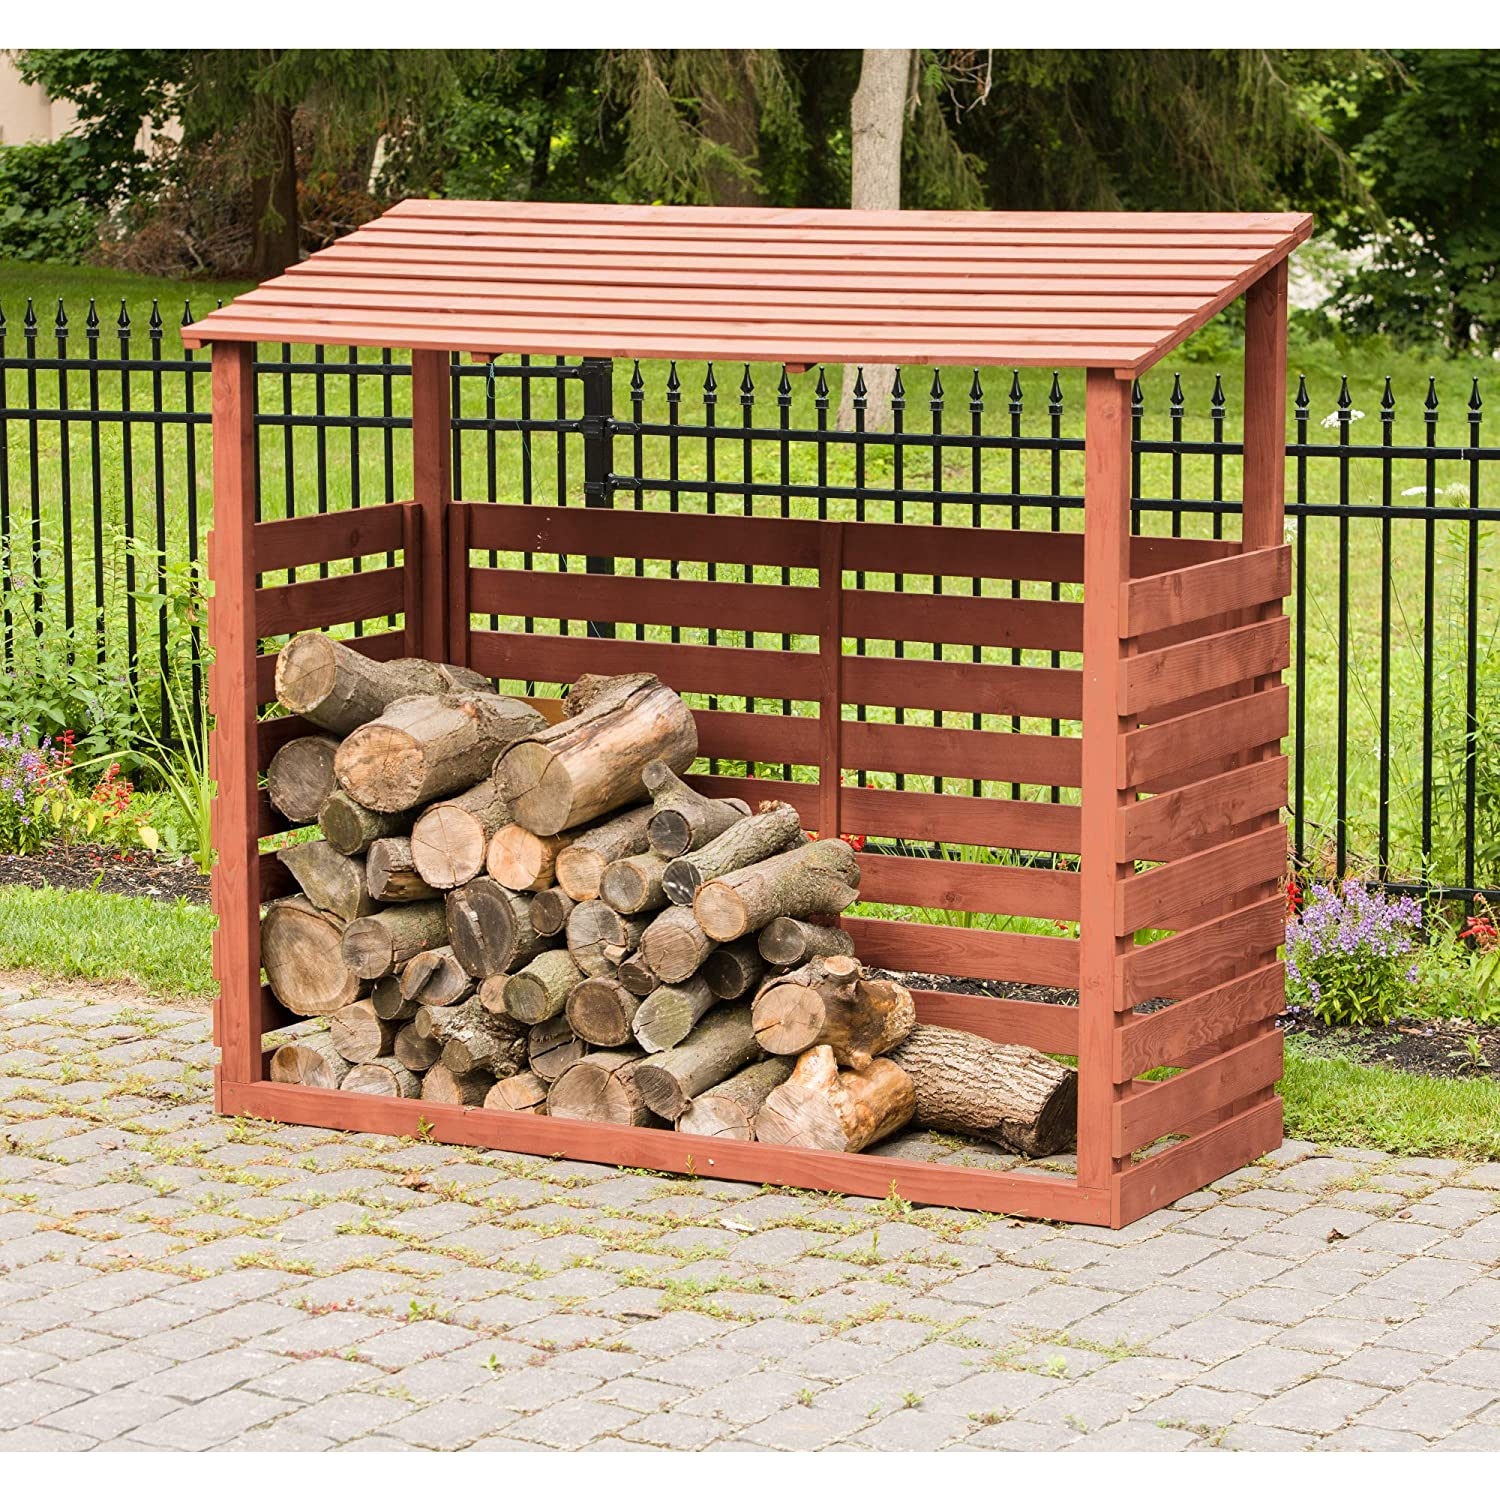 House and Patio Decor Cabin and Container Box Logs Wood Brown Deck Large Log Holder Shelf Rustic Yard Covered Outdoor Storage for Lumber Stack Leisure Season FS6828 Firewood Shed Cover